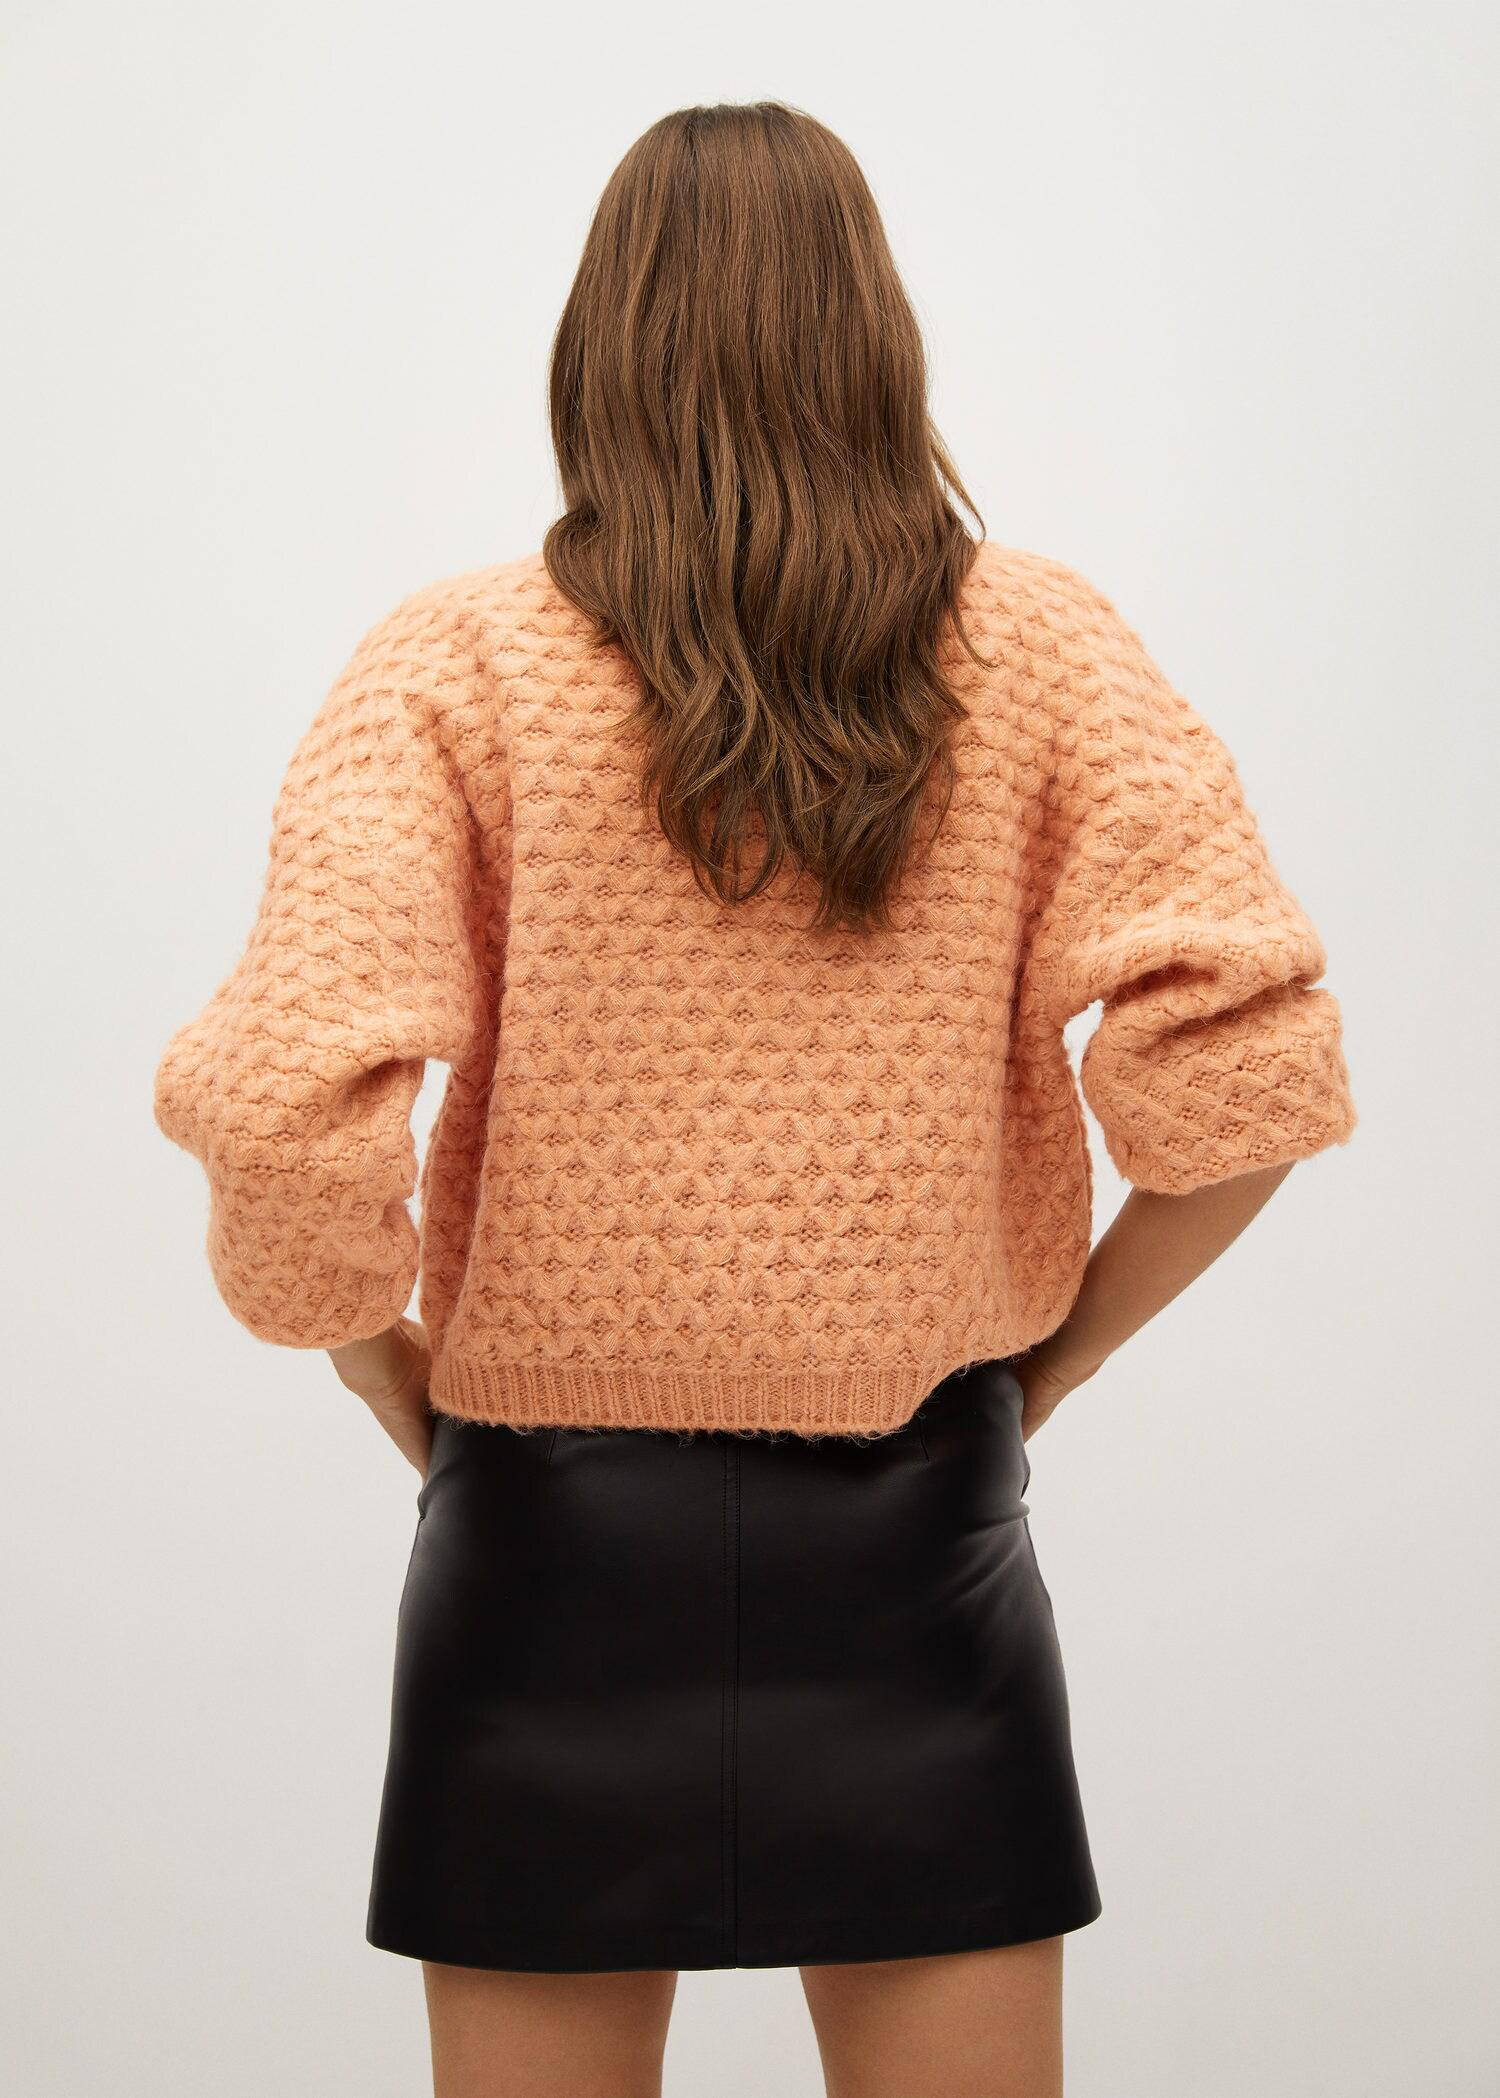 Textured knit sweater 2